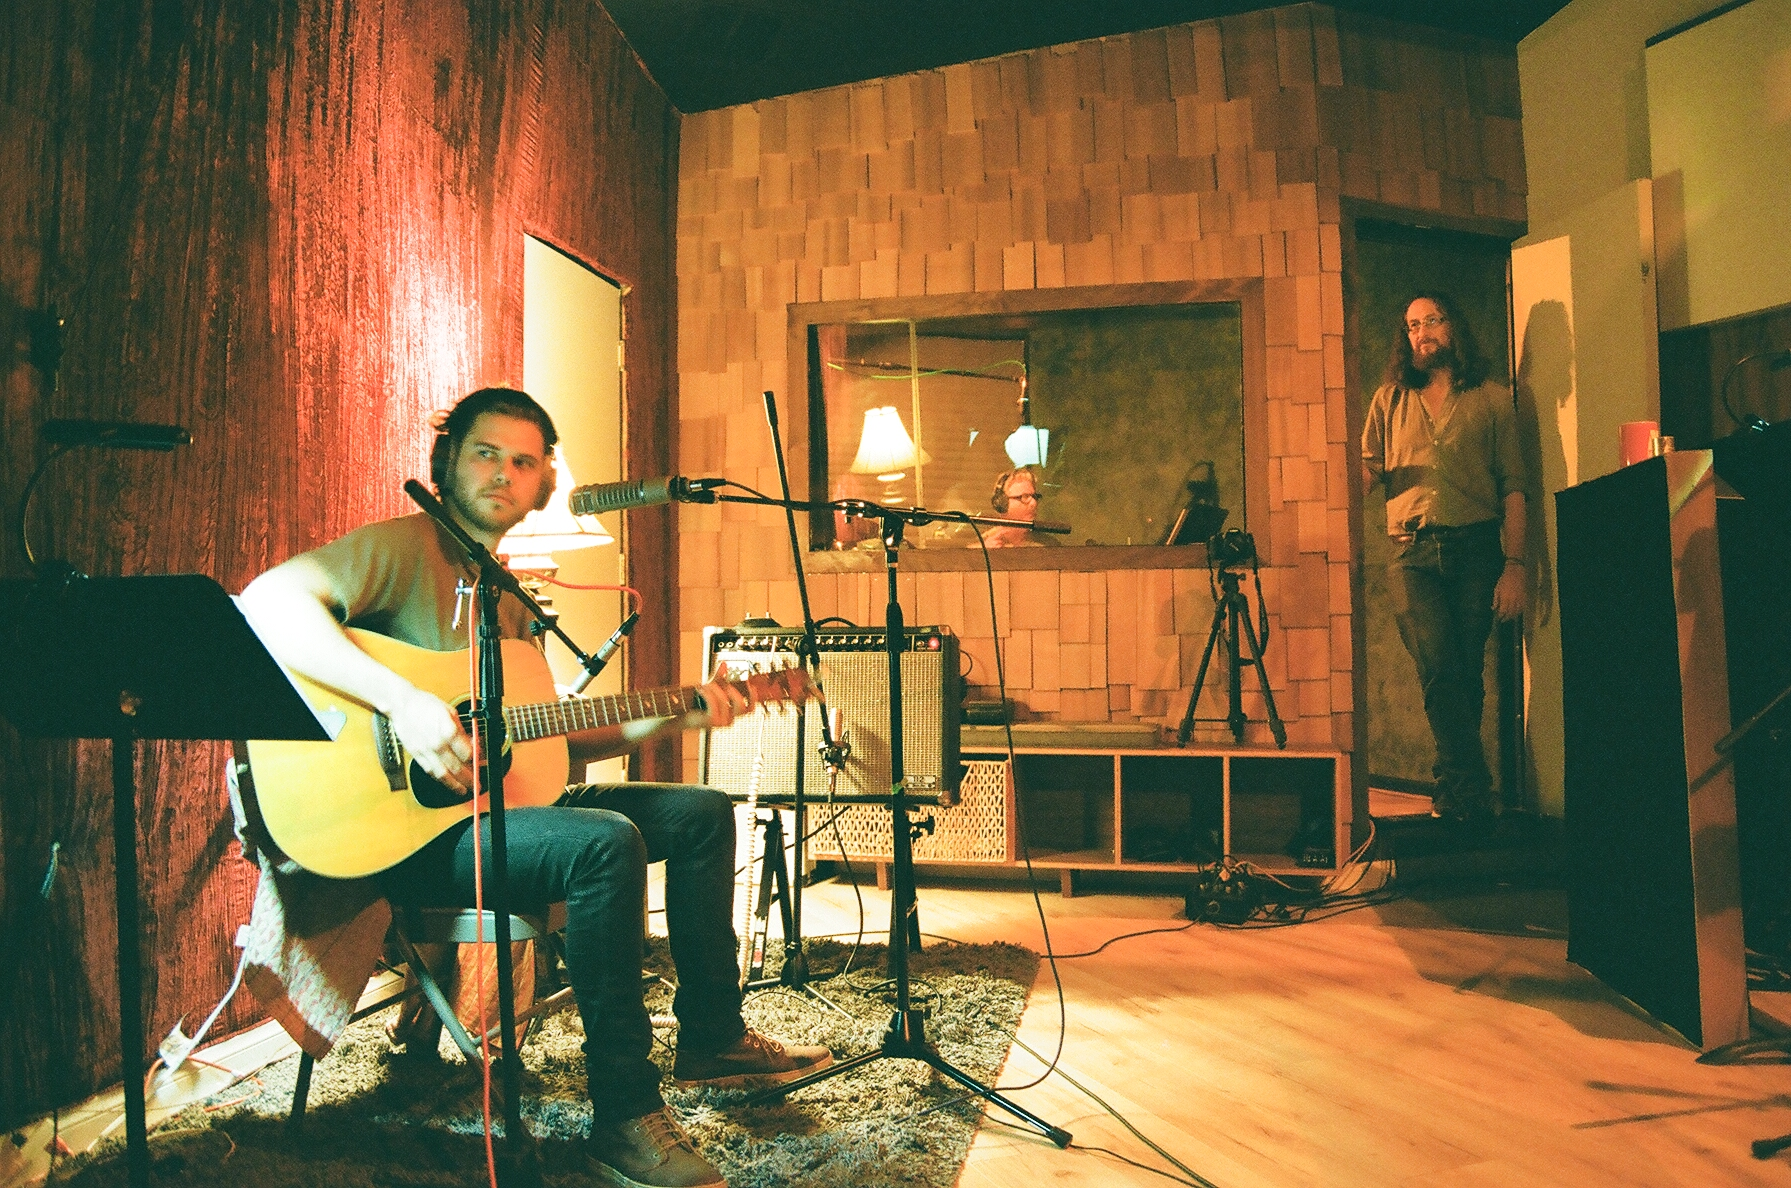 Singer/songwriter Chad Richard (Caleb Trask) and Chris Schlarb (Photo by Devin O'Brien)